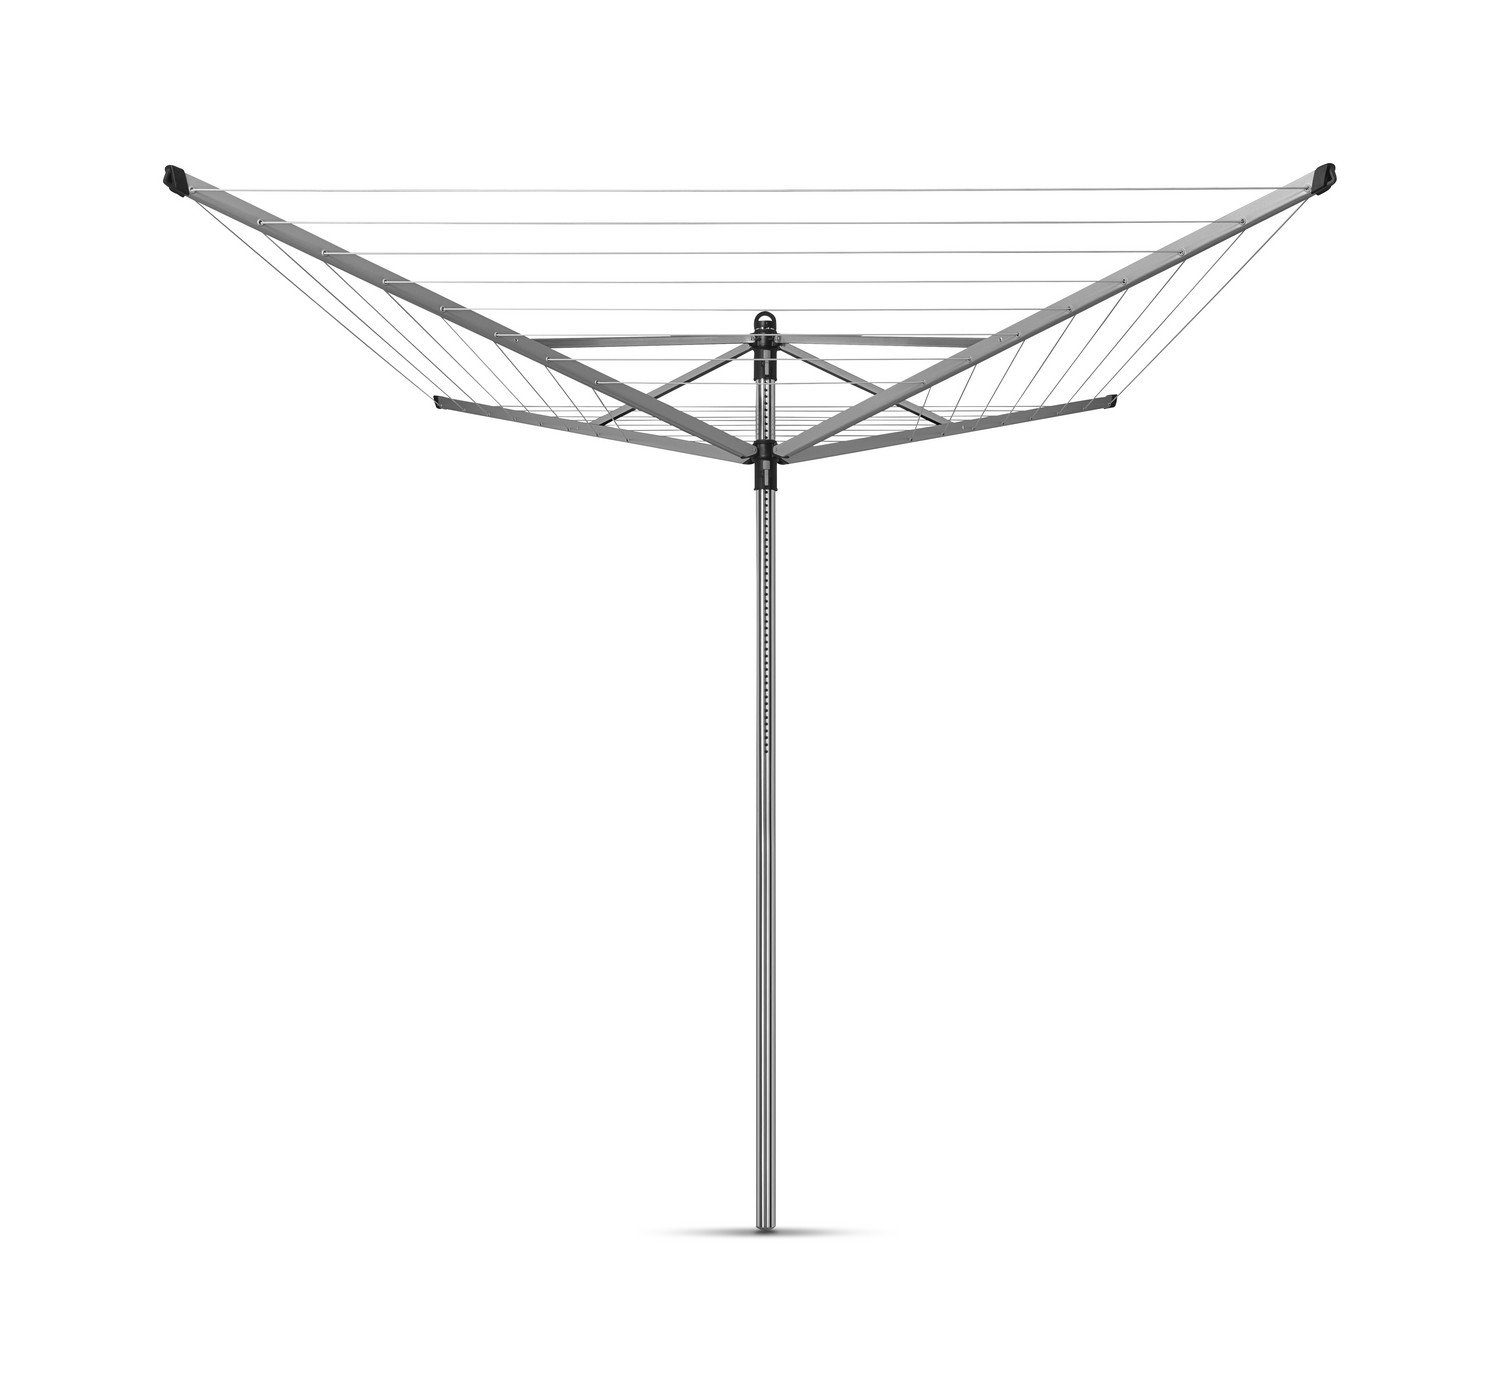 Brabantia Lift-O-Matic Rotary Dryer Clothes Line - 196 feet, 311048 by Brabantia